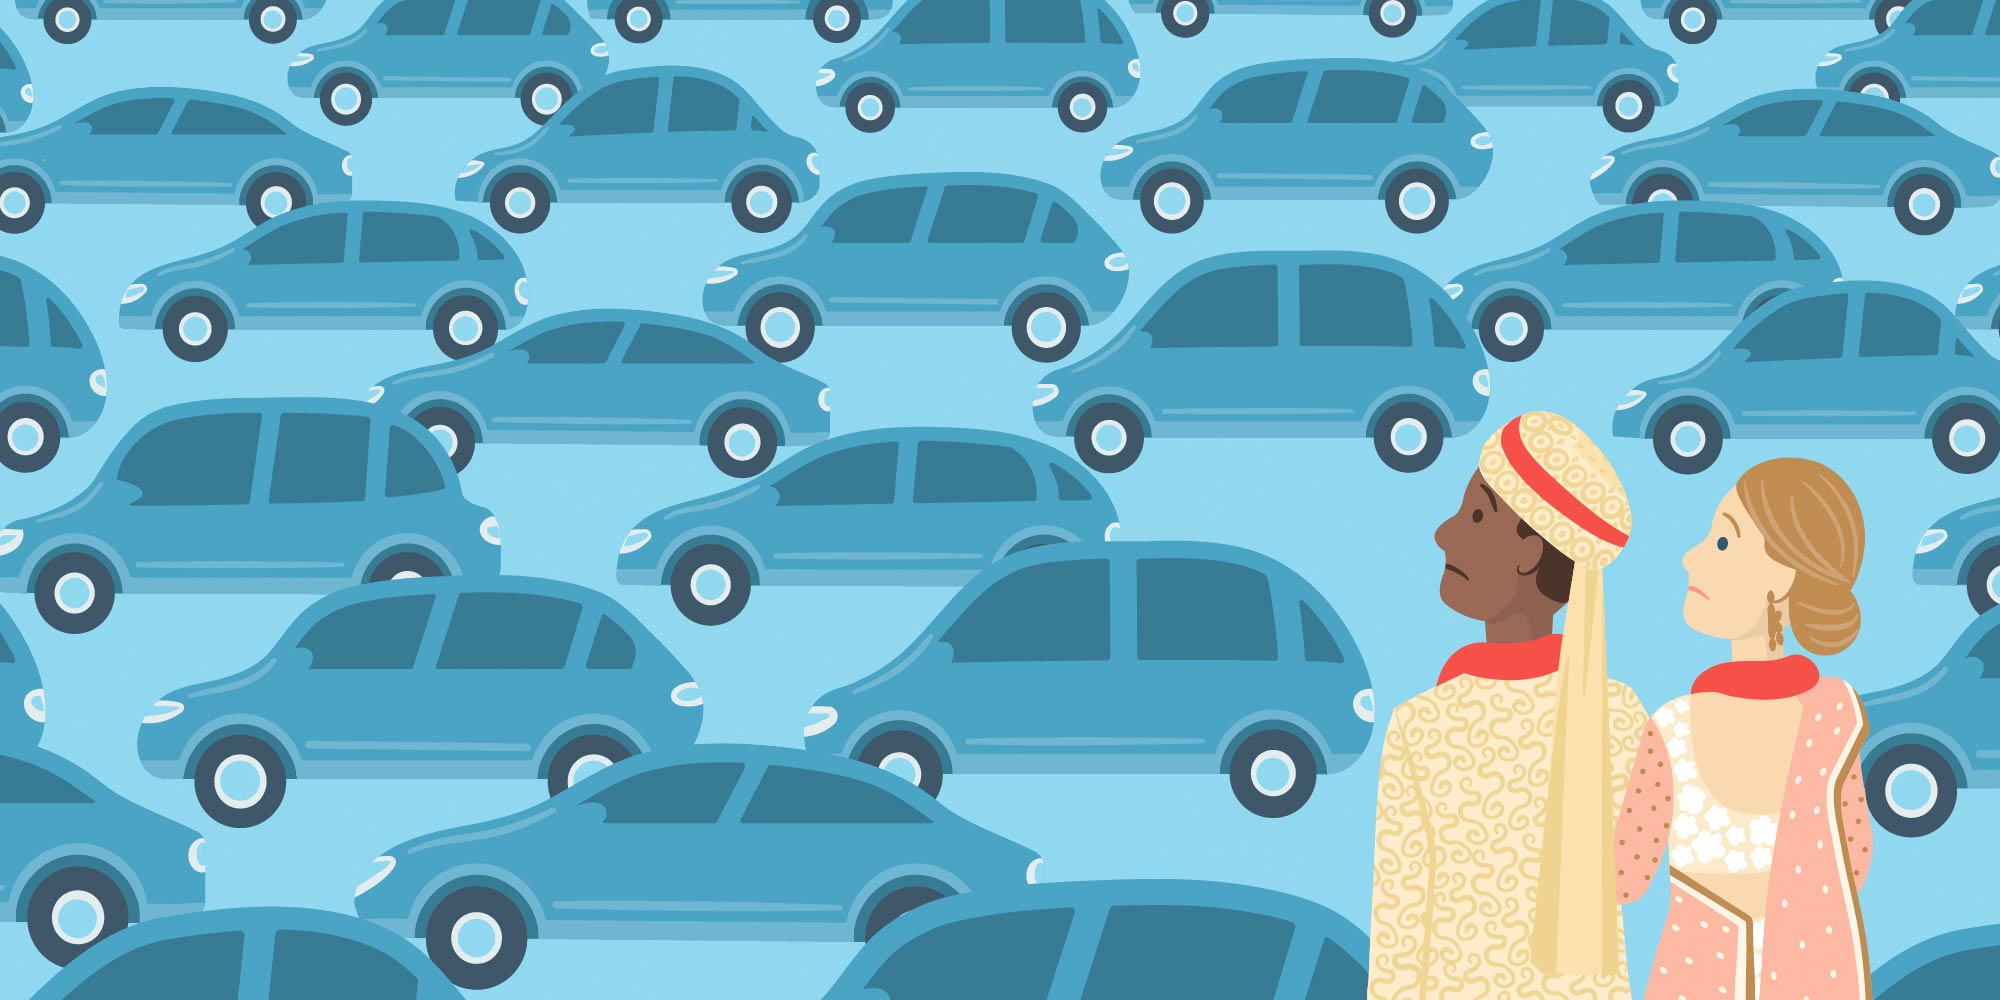 Illustration: Bride and Groom with worried faces looking into a sea of Uber cars.